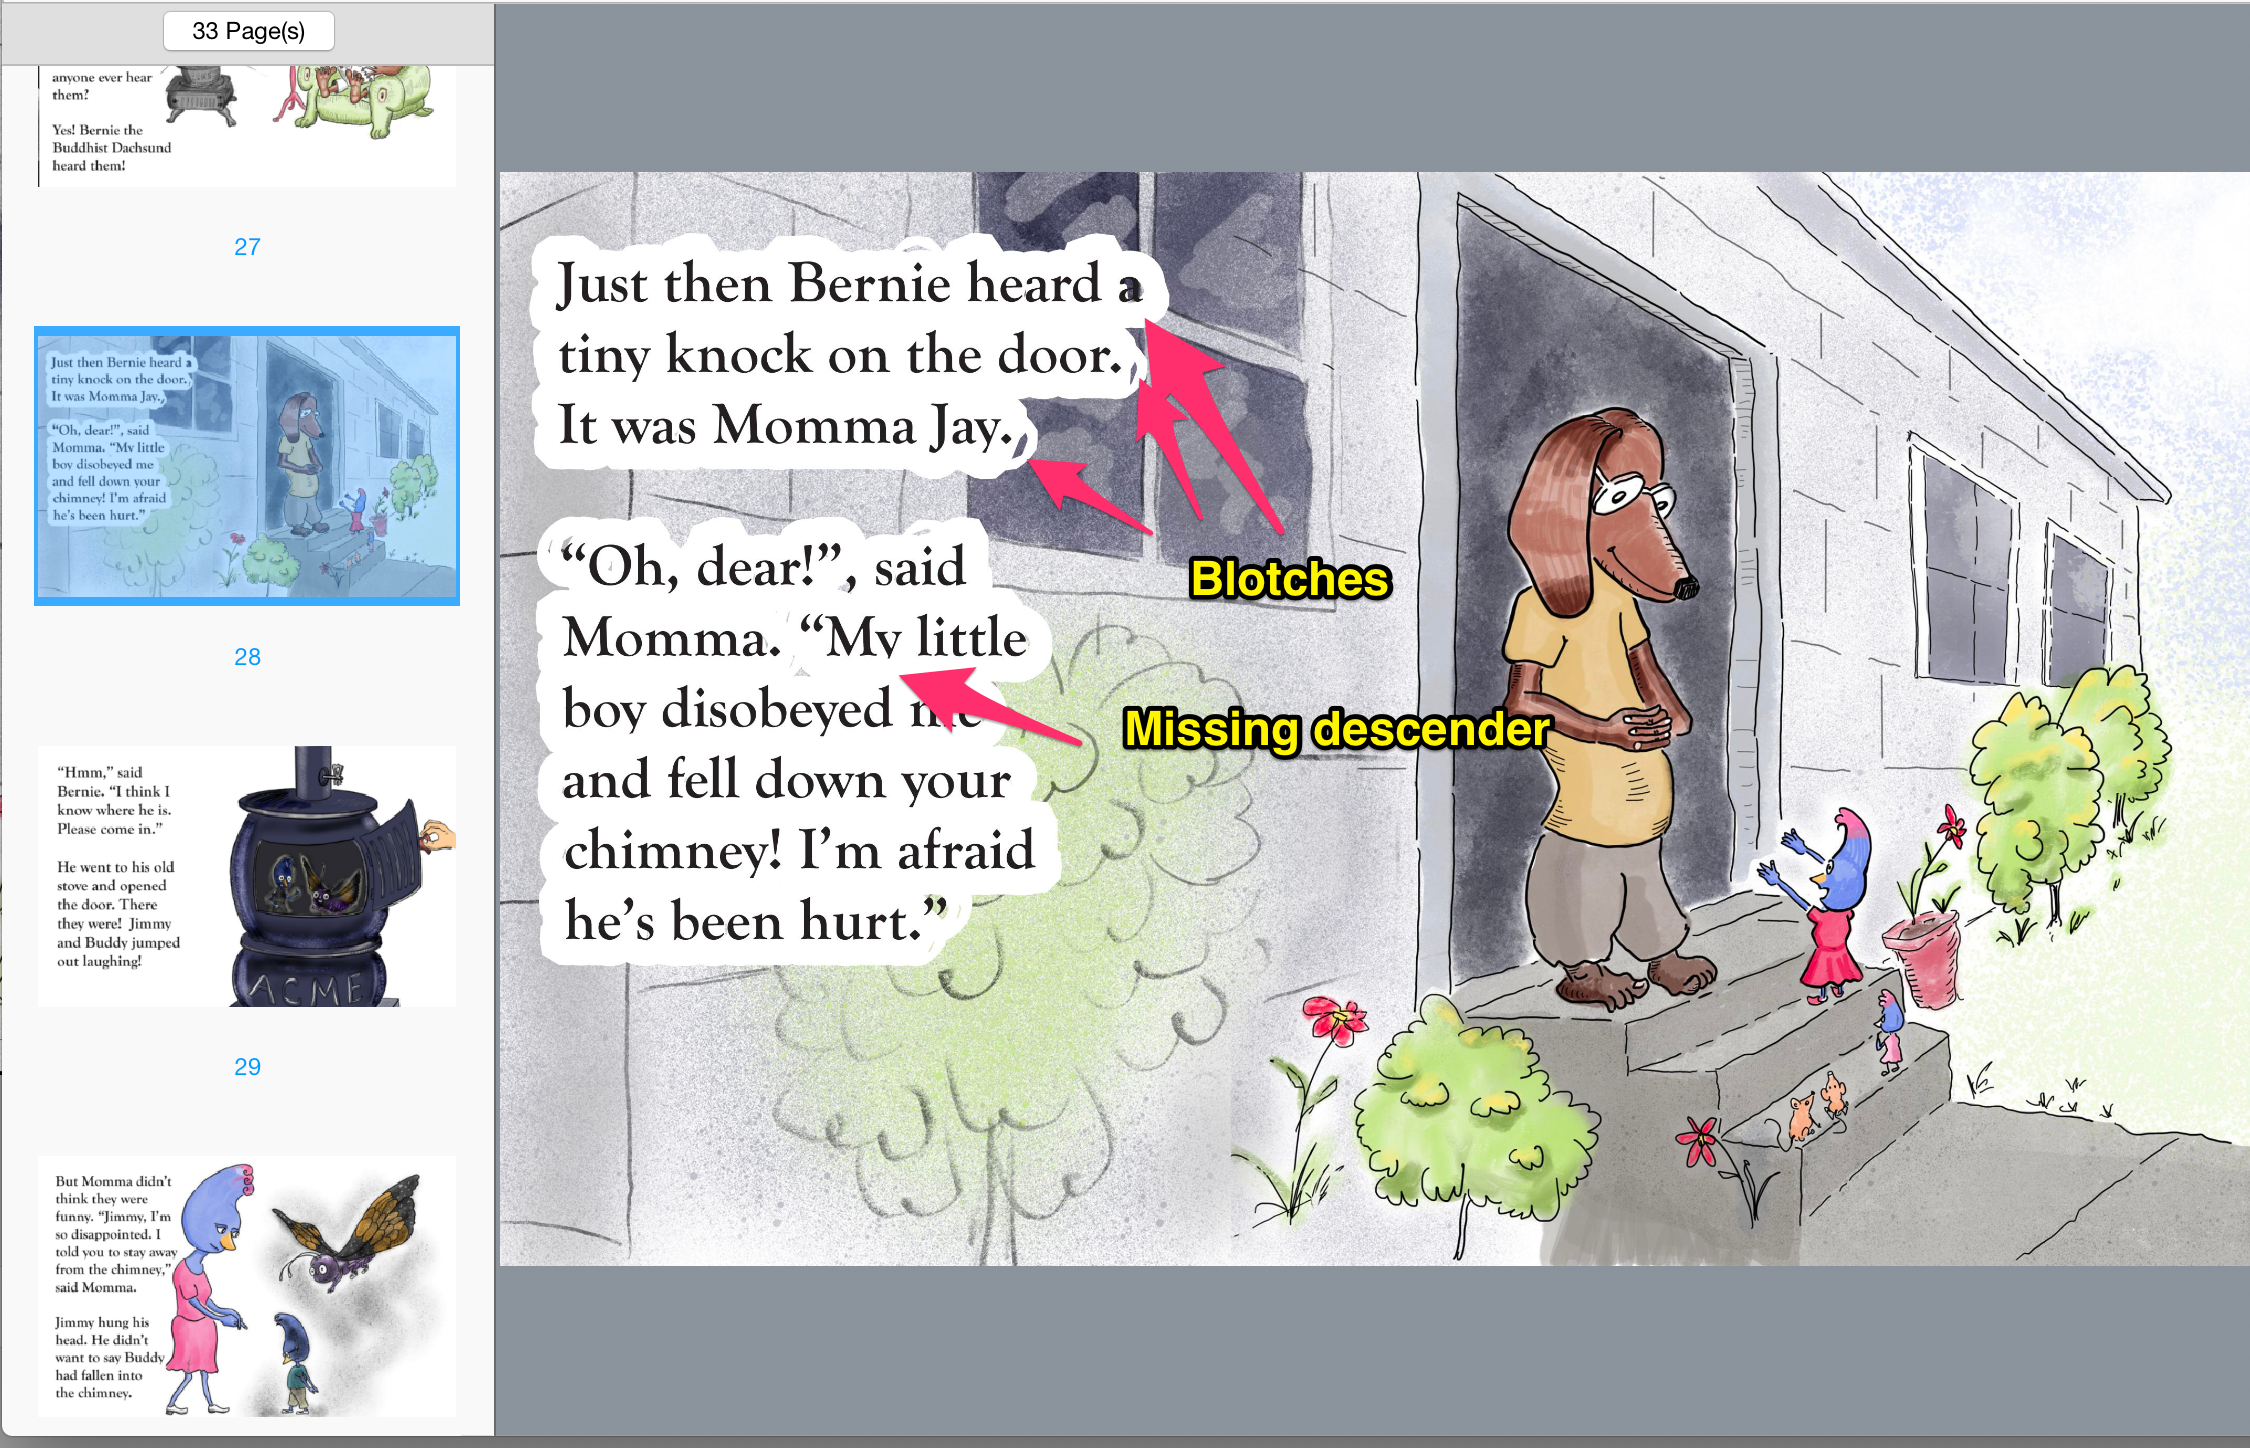 indesign_export_problems.png indesign export artifacts, kindle create artifacts, e-book problems,children's picture book